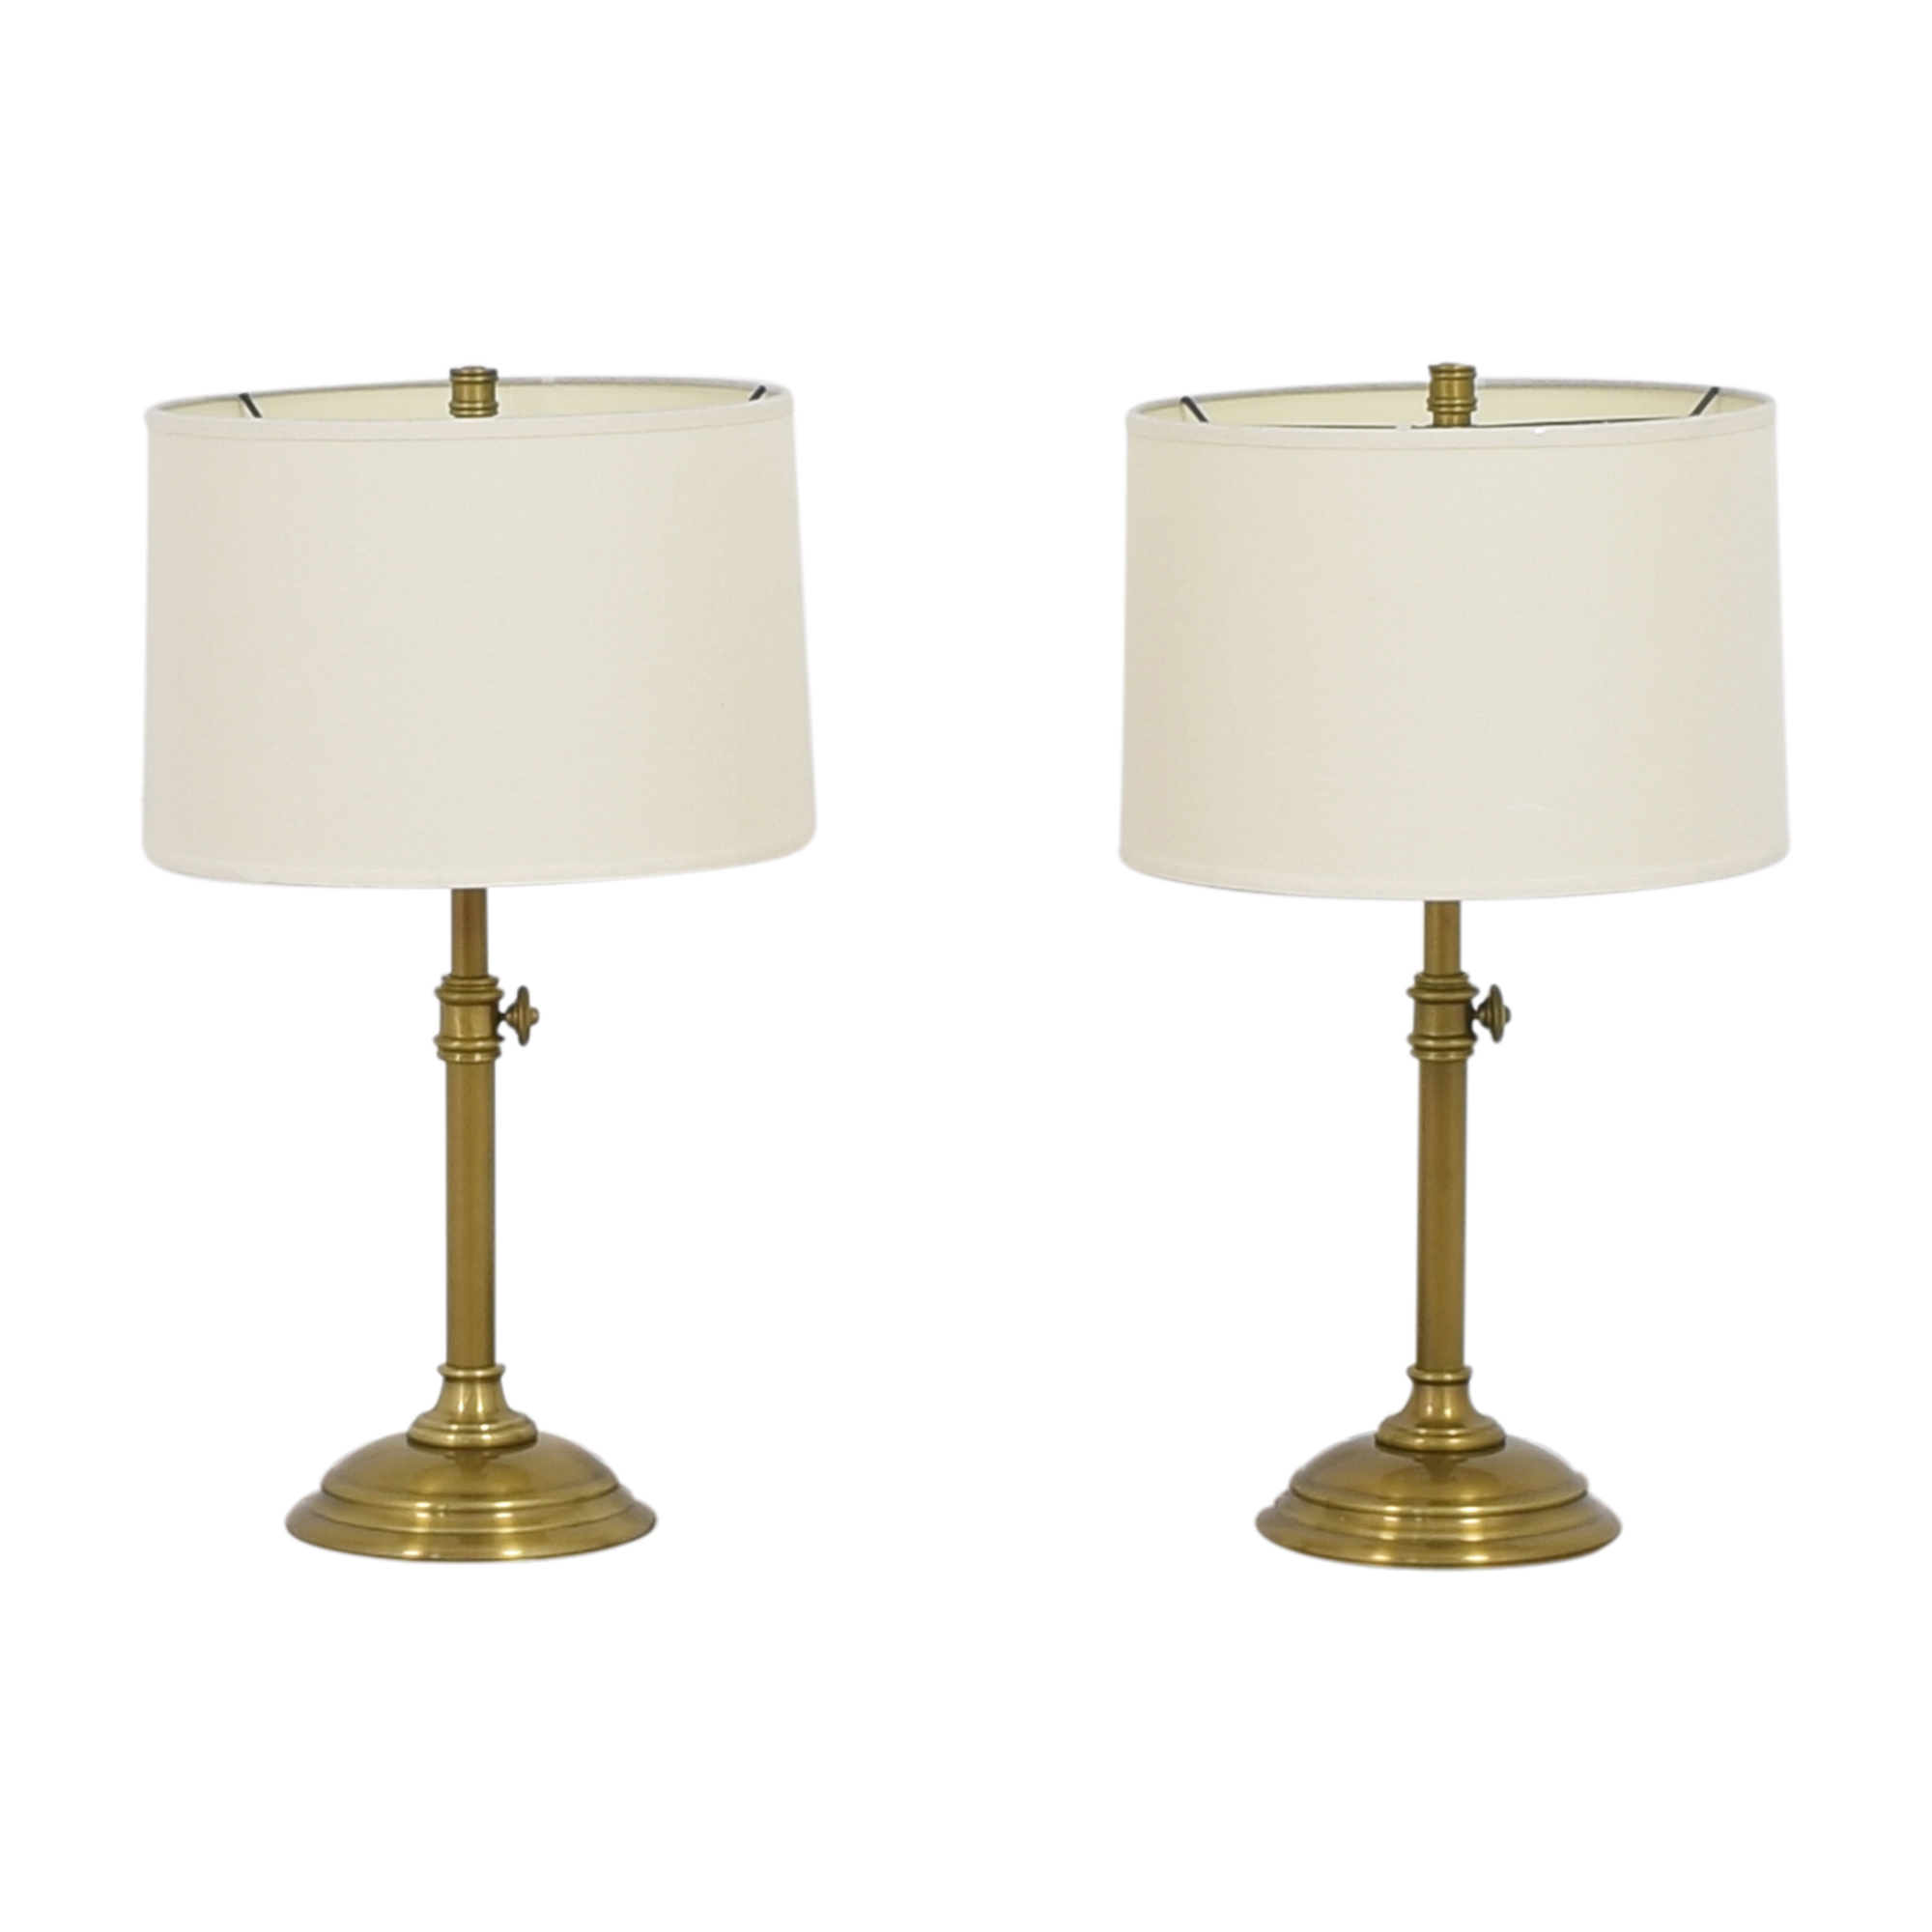 buy Pottery Barn Chelsea Adjustable Table Lamps Pottery Barn